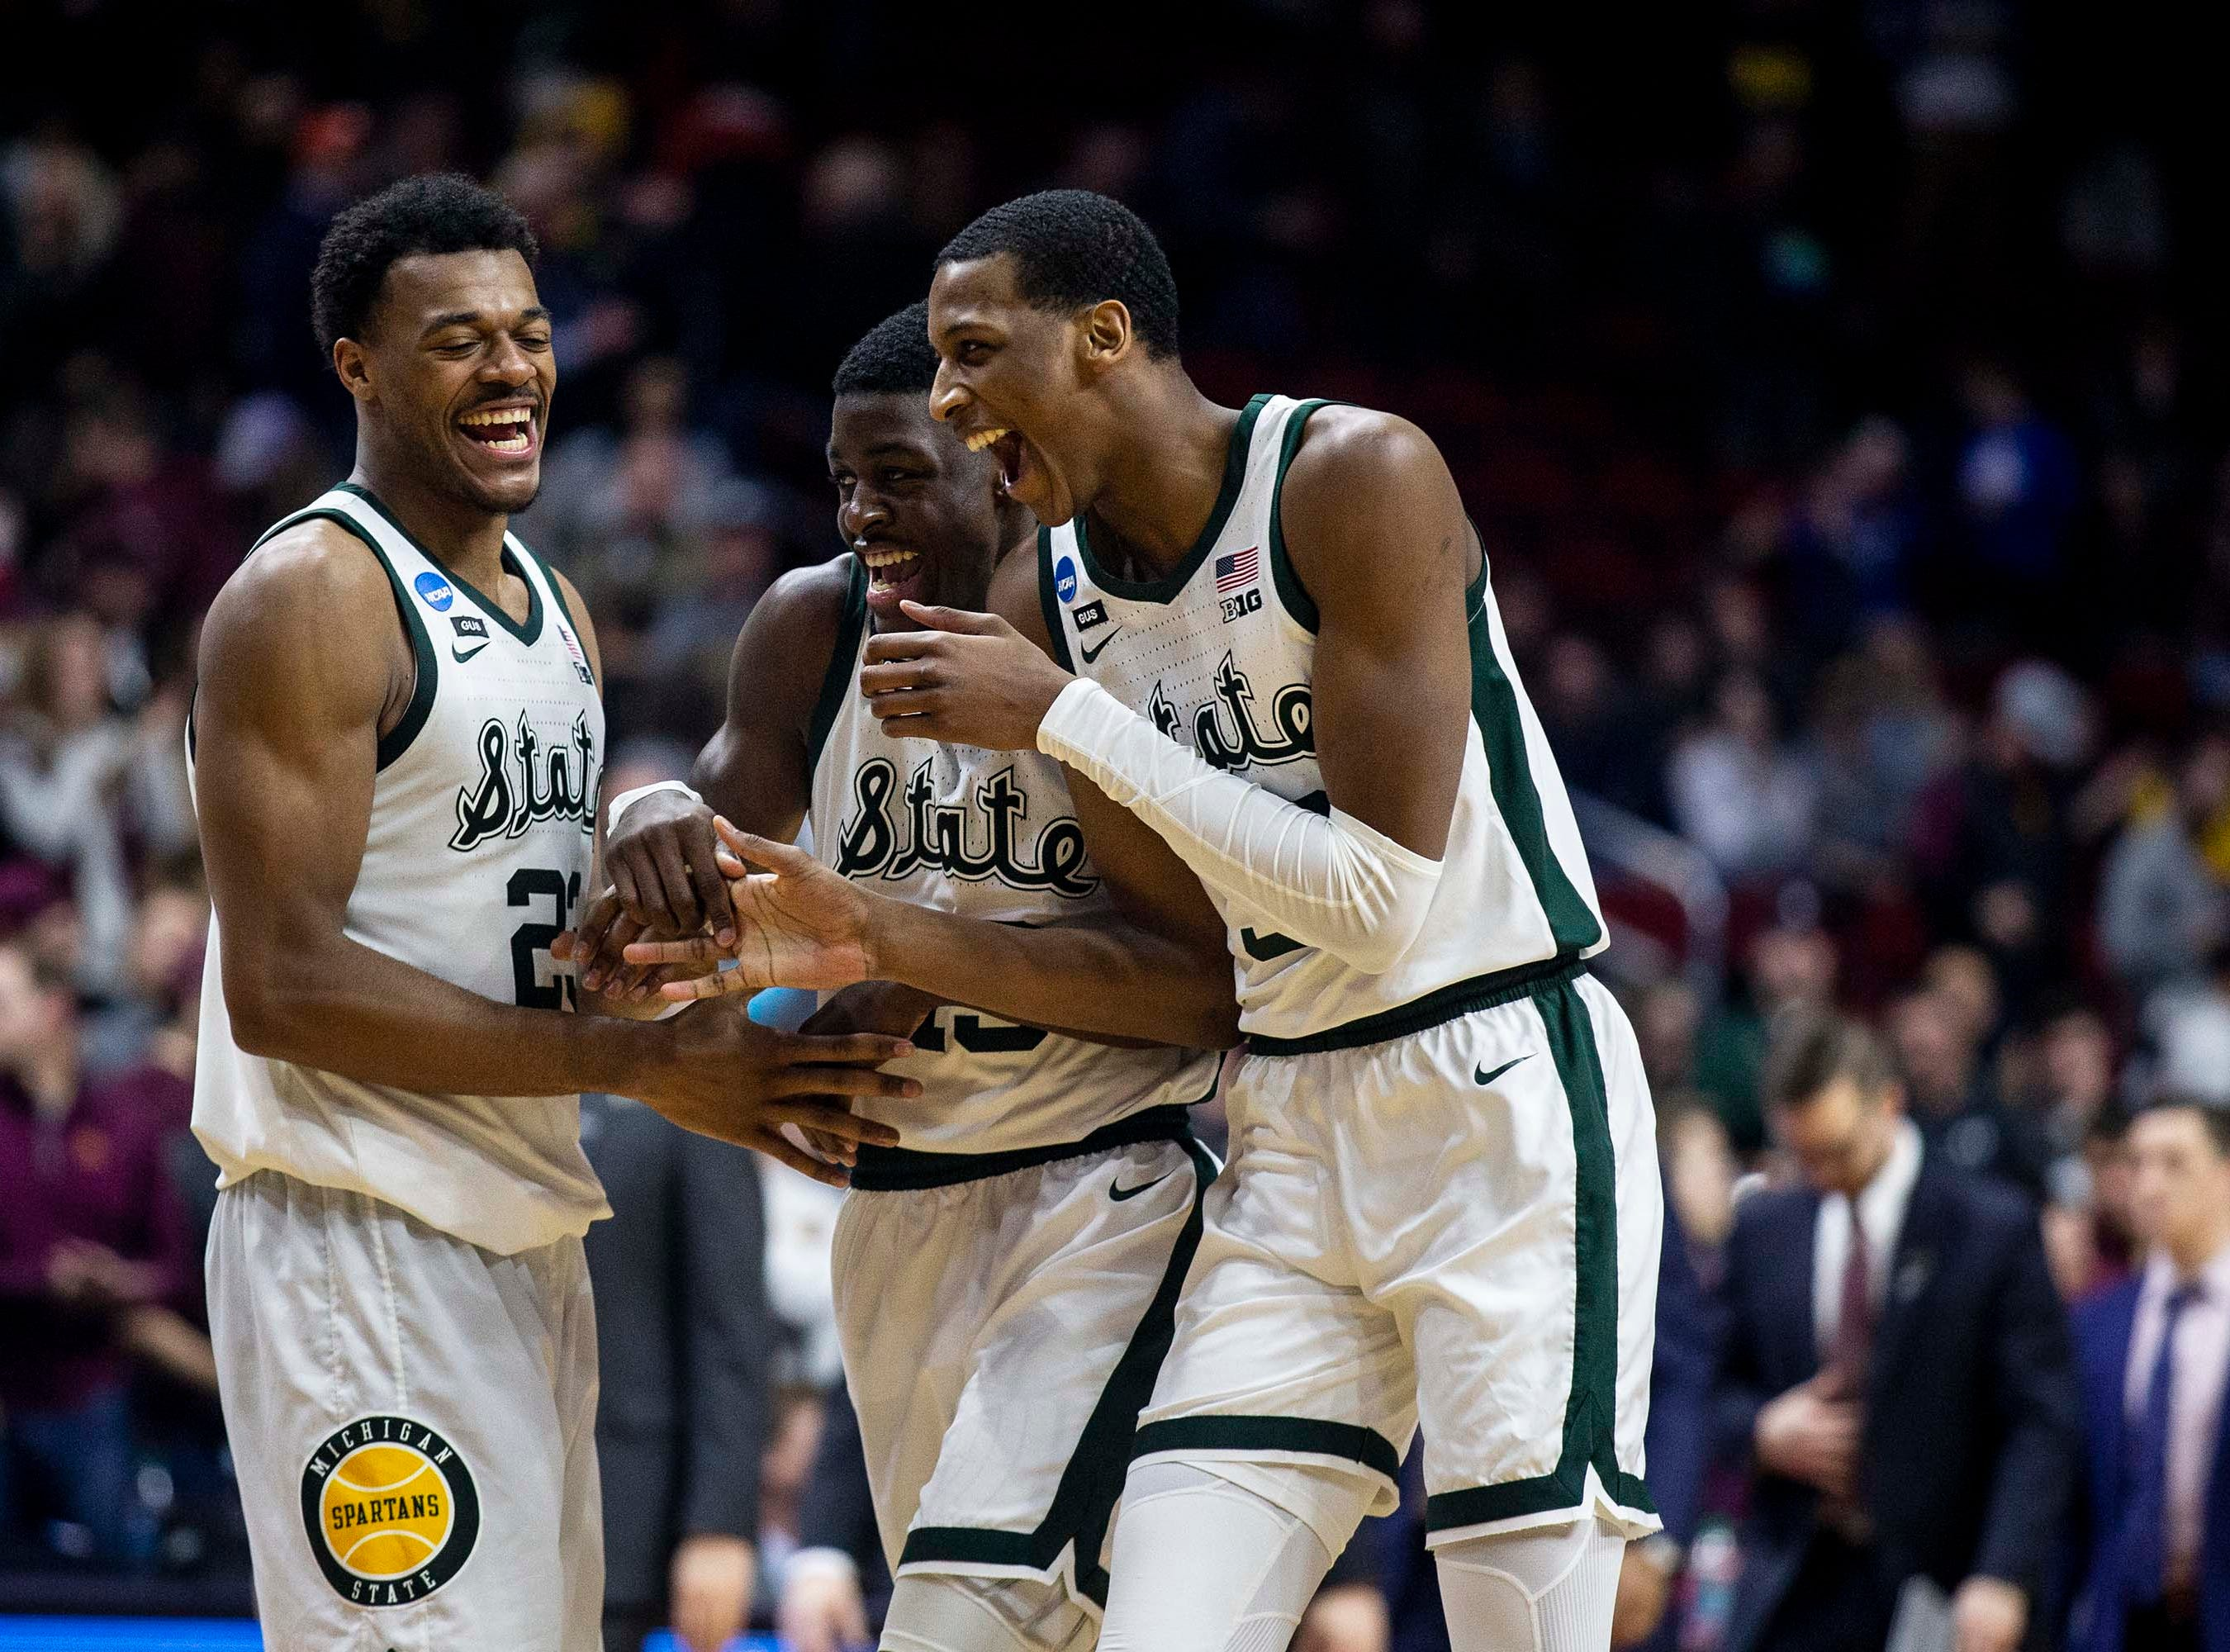 Michigan State players are all smiles after winning the NCAA Tournament second-round match-up between Minnesota and Michigan State on Saturday, March 23, 2019, in Wells Fargo Arena in Des Moines, Iowa.